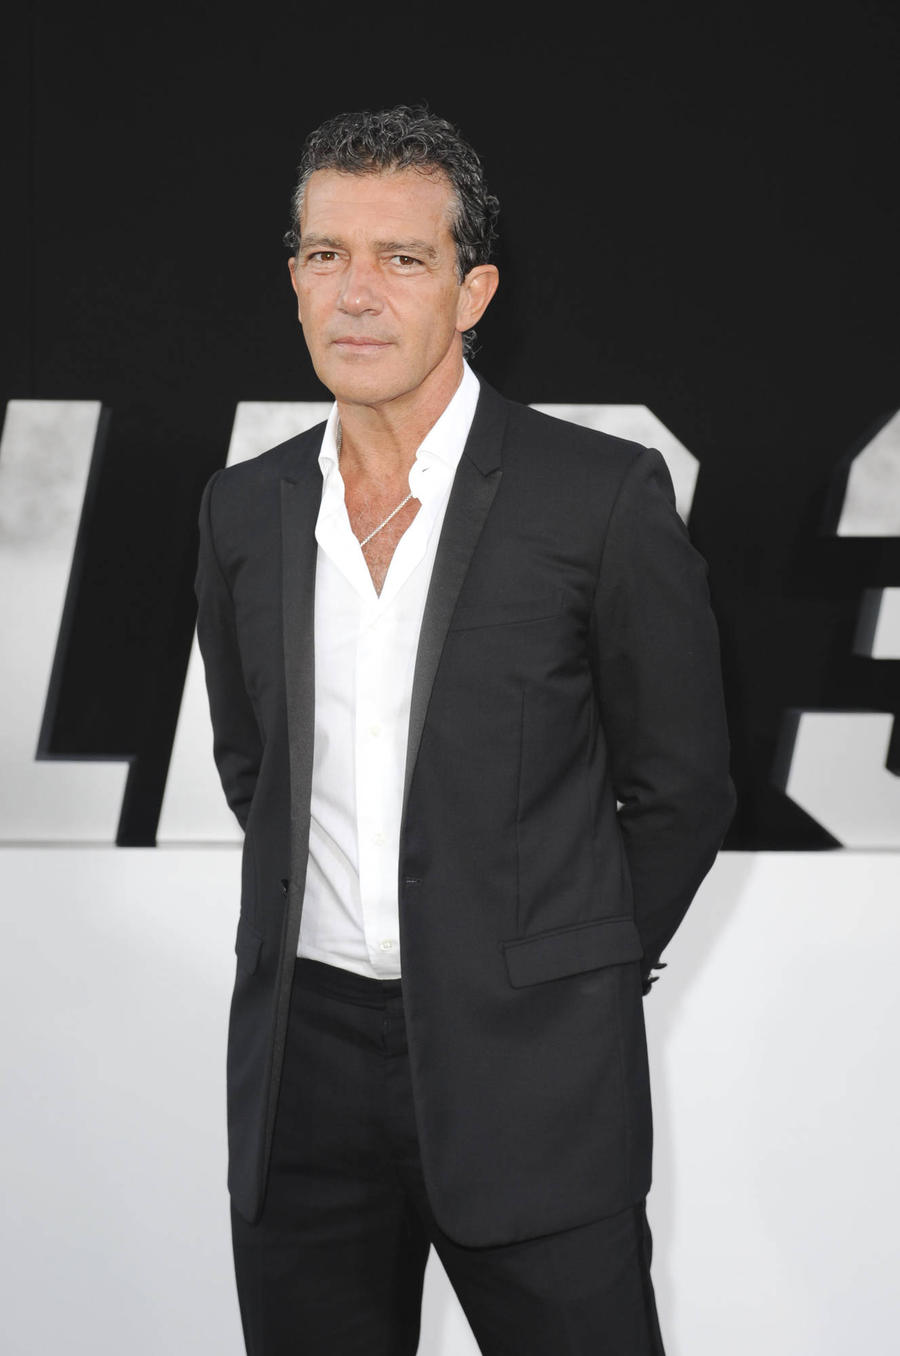 Antonio Banderas To Play Gianni Versace In New Biopic